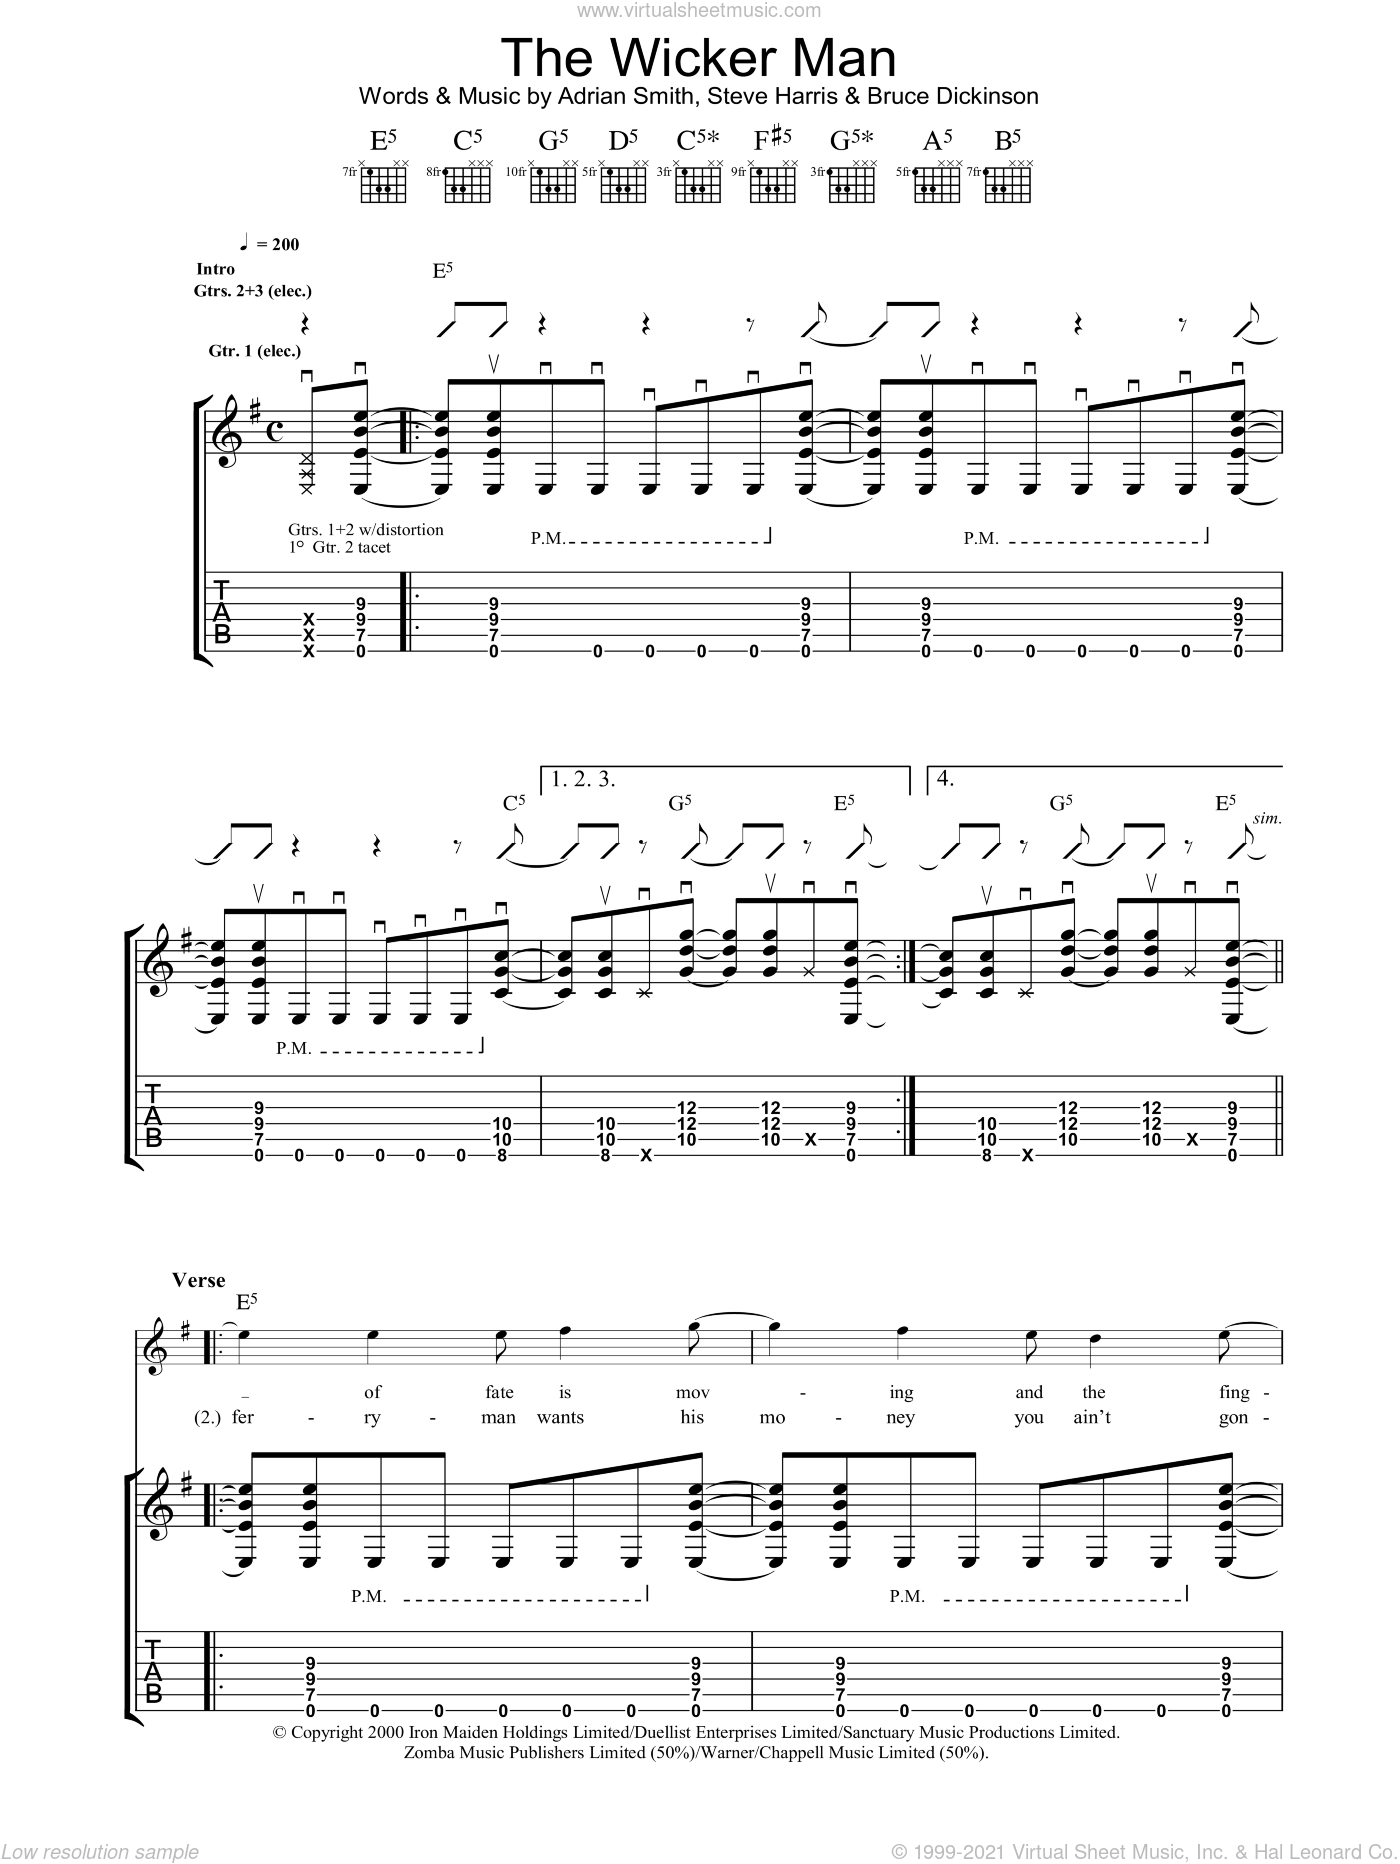 The Wicker Man sheet music for guitar (tablature) by Iron Maiden, Adrian Smith, Bruce Dickinson and Steve Harris, intermediate skill level